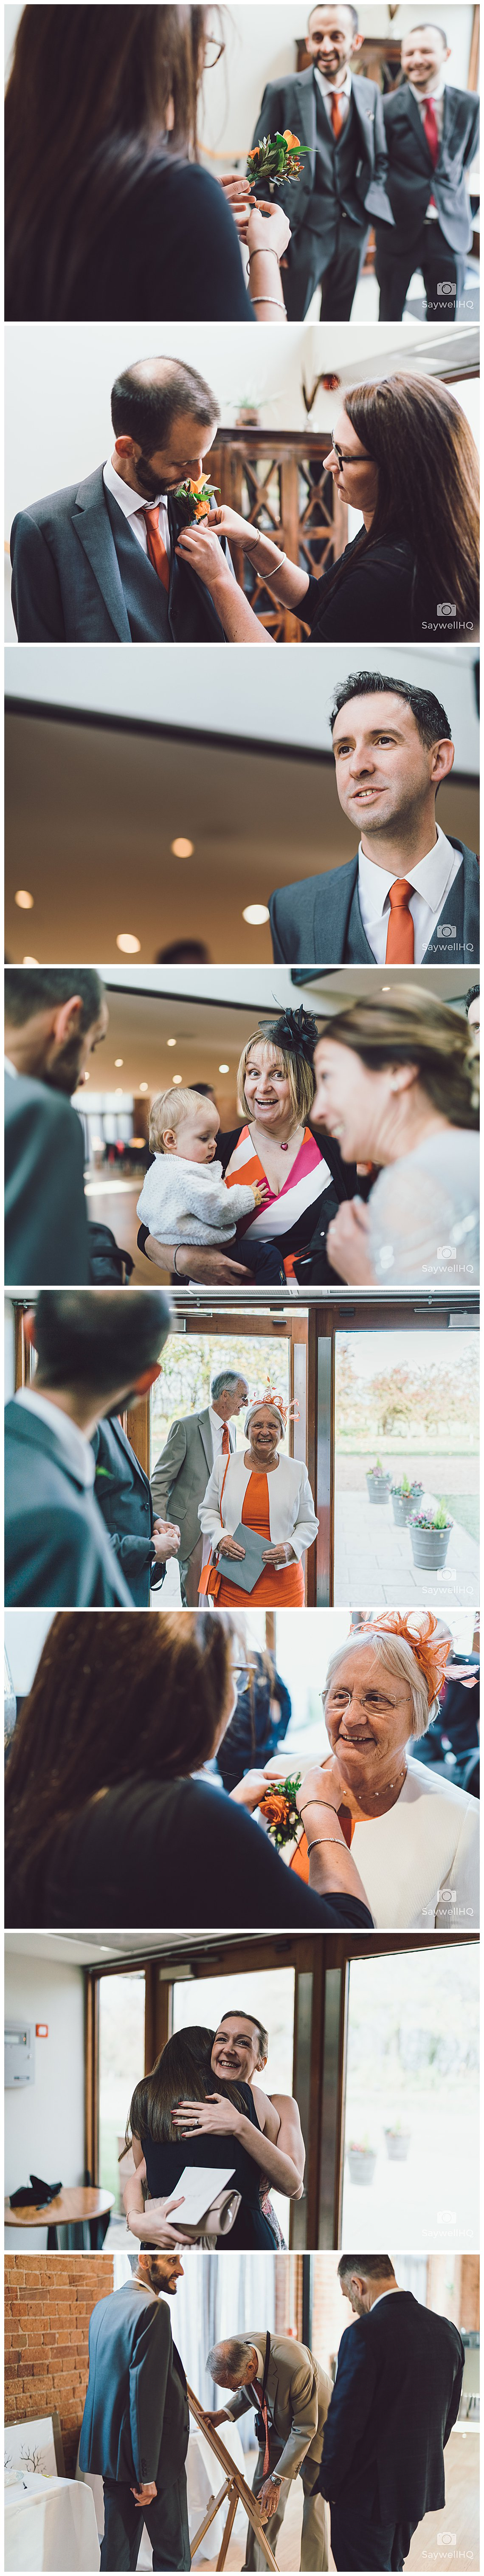 Wedding photography at The Carriage Hall in Nottingham - guests arrive at carriage hall for a wedding